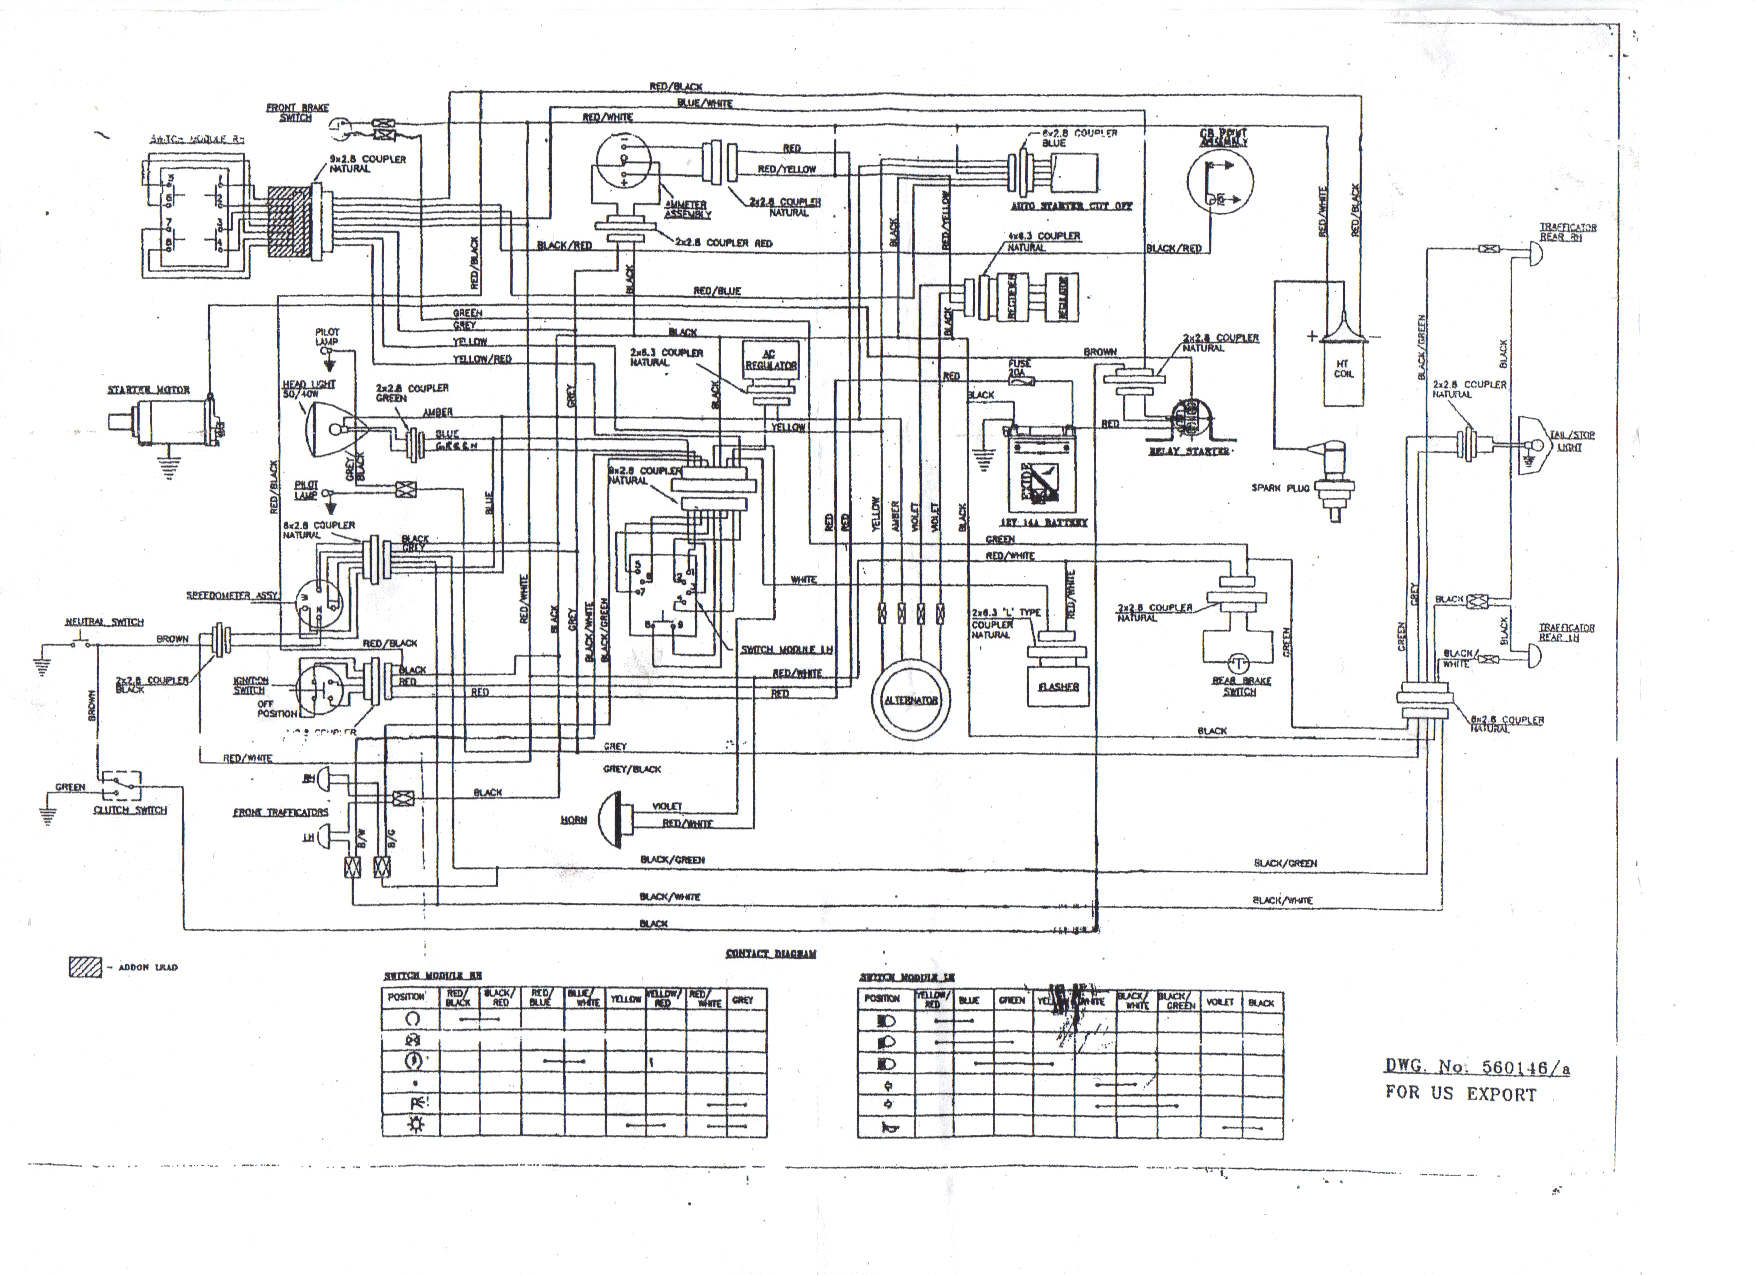 yamaha royal star wiring diagram royal enfield bullet 500 wiring diagram - wiring diagram #8